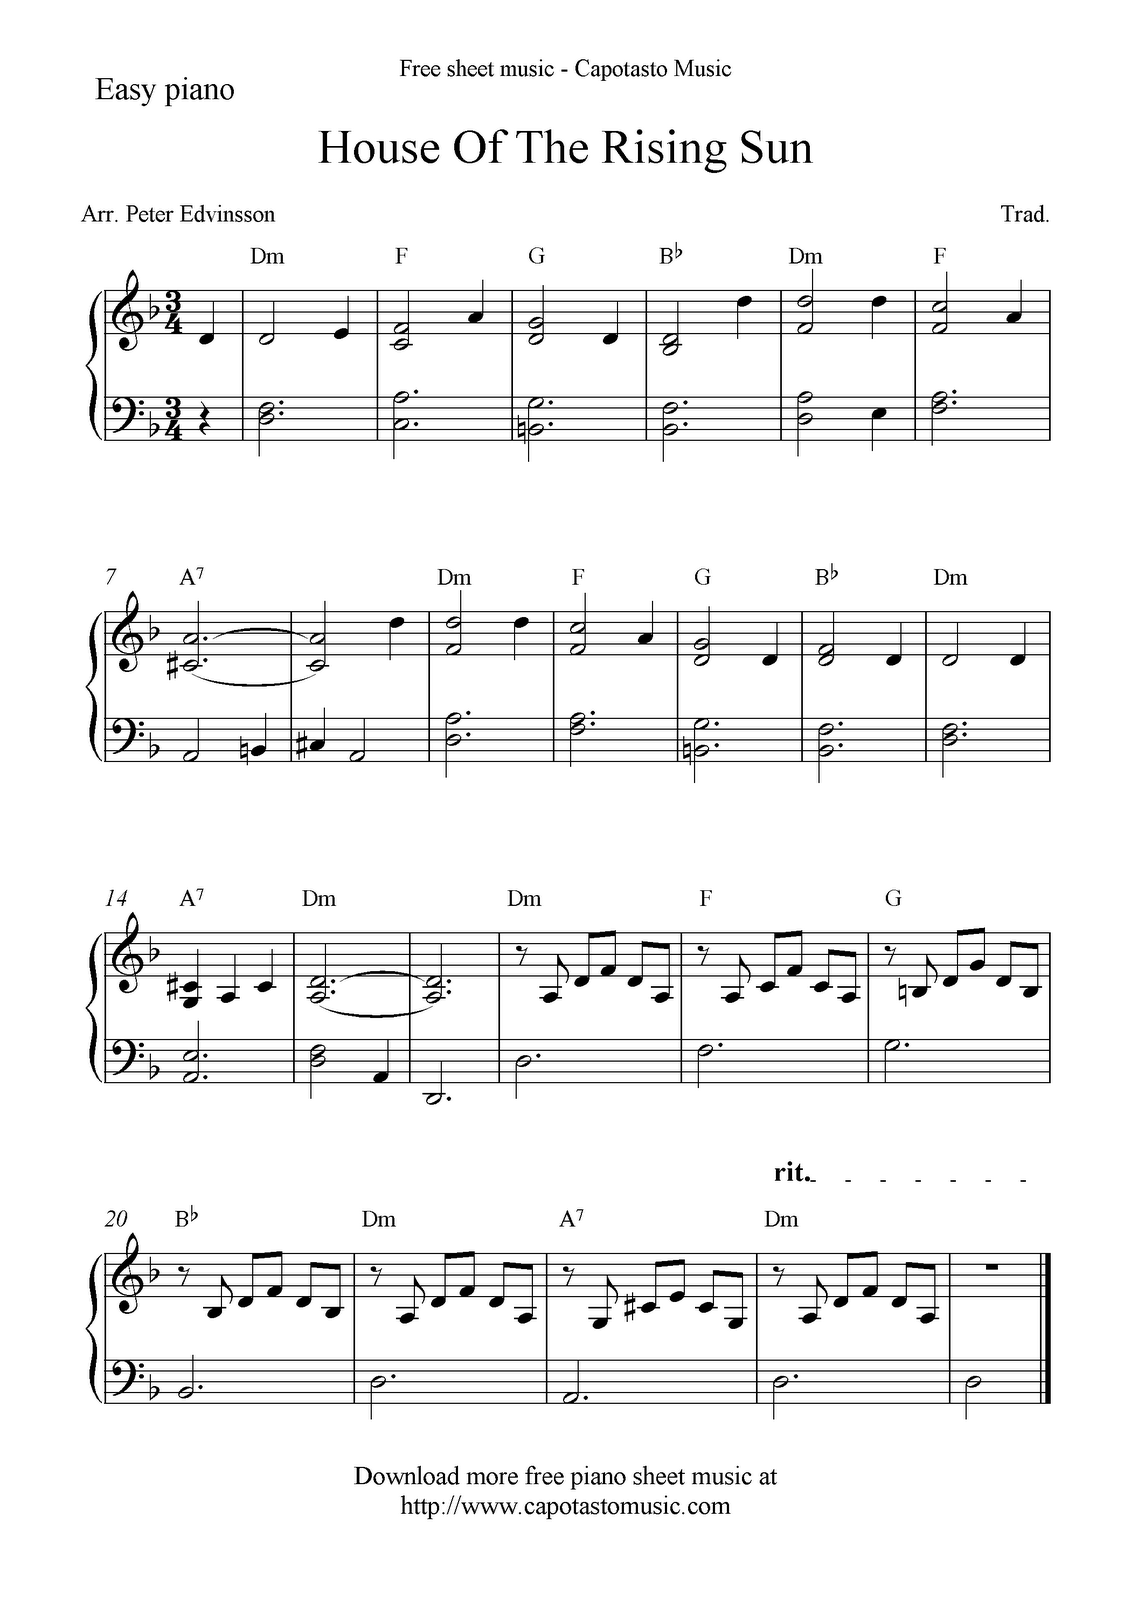 House Of The Rising Sun Cream Piano Sheet Music Free Sheet Music Free Sheet Music,How To Paint Cabinets Without Sanding Them